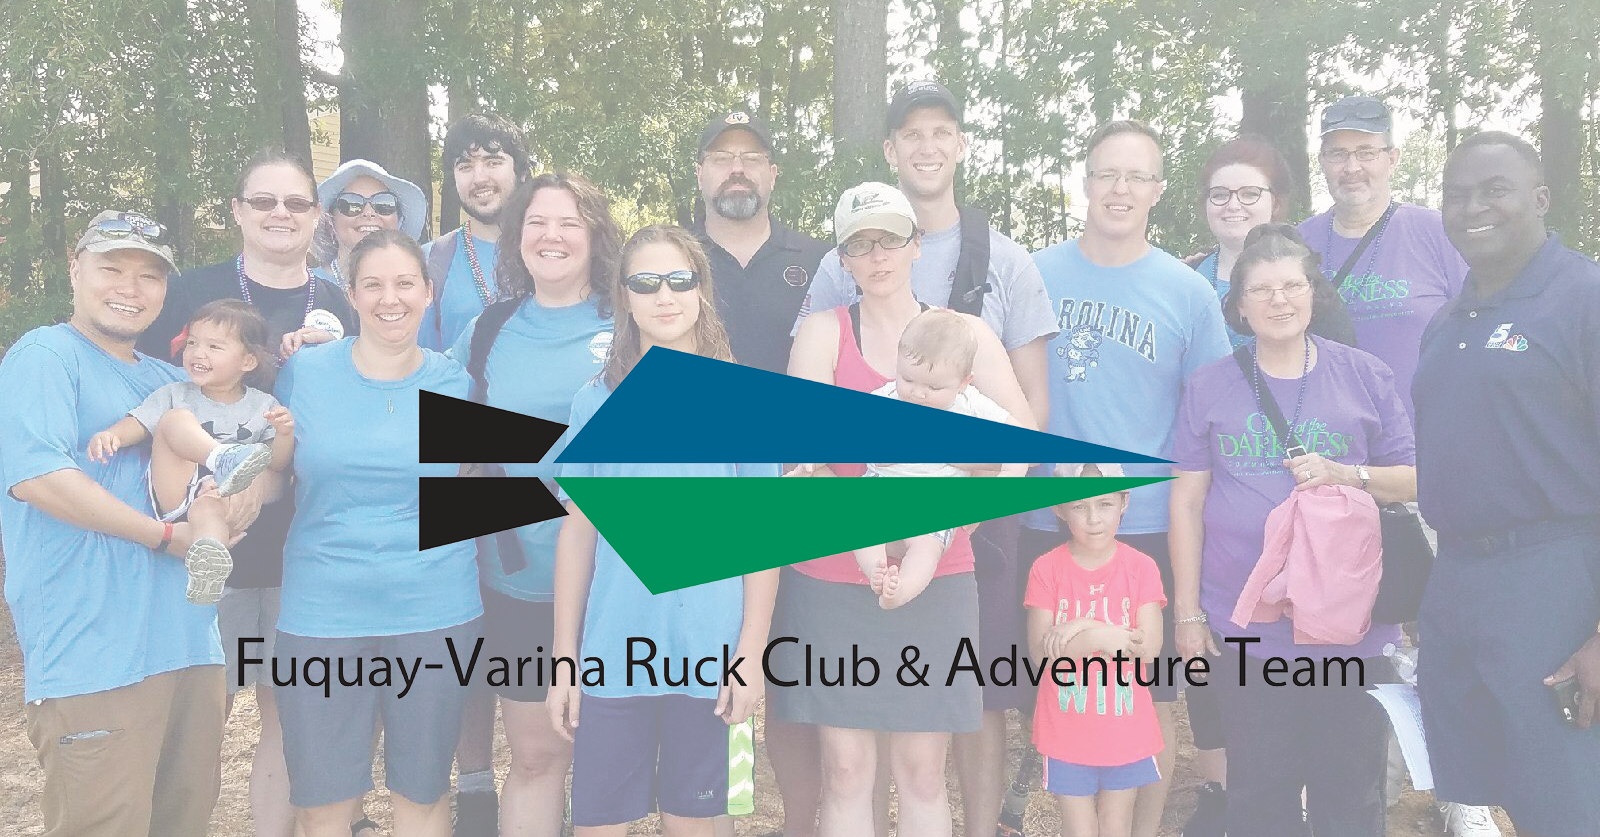 Fuquay-Varina Ruck Club and Adventure Team | An Official GORUCK Ruck Club | Fuquay-Varina, NC